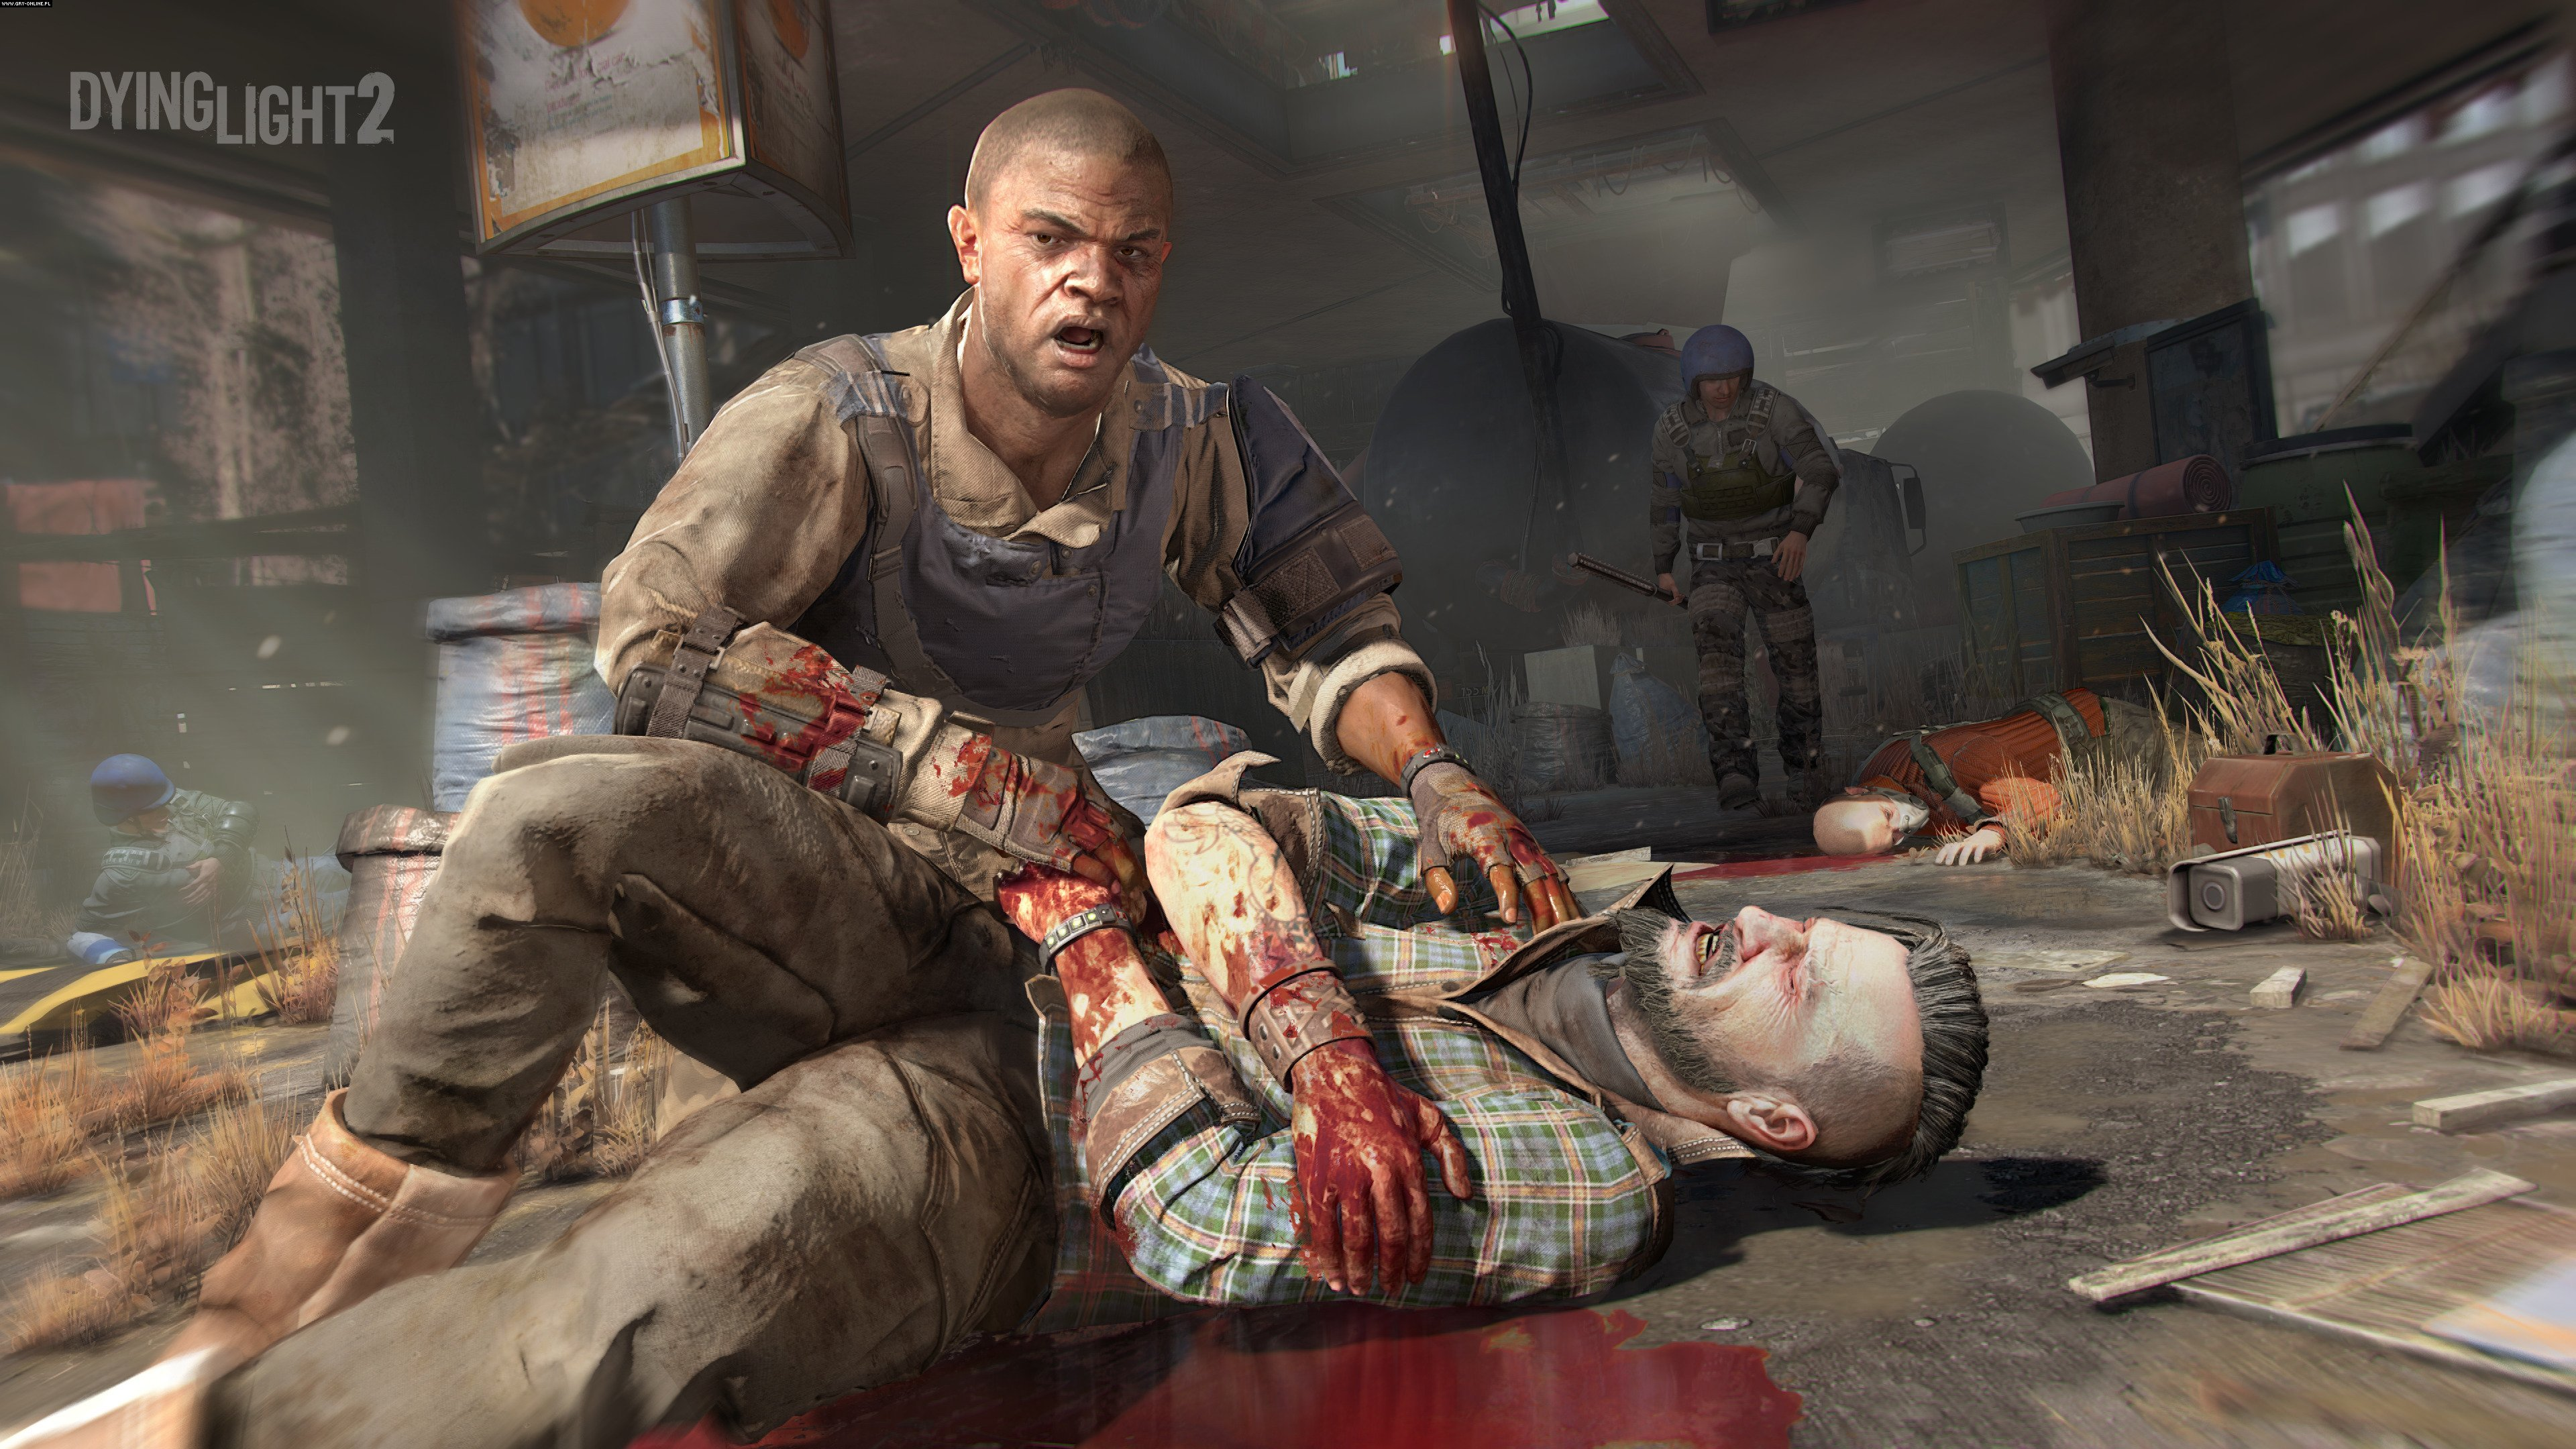 Dying Light 2 PC, PS4, XONE Games Image 7/21, Techland